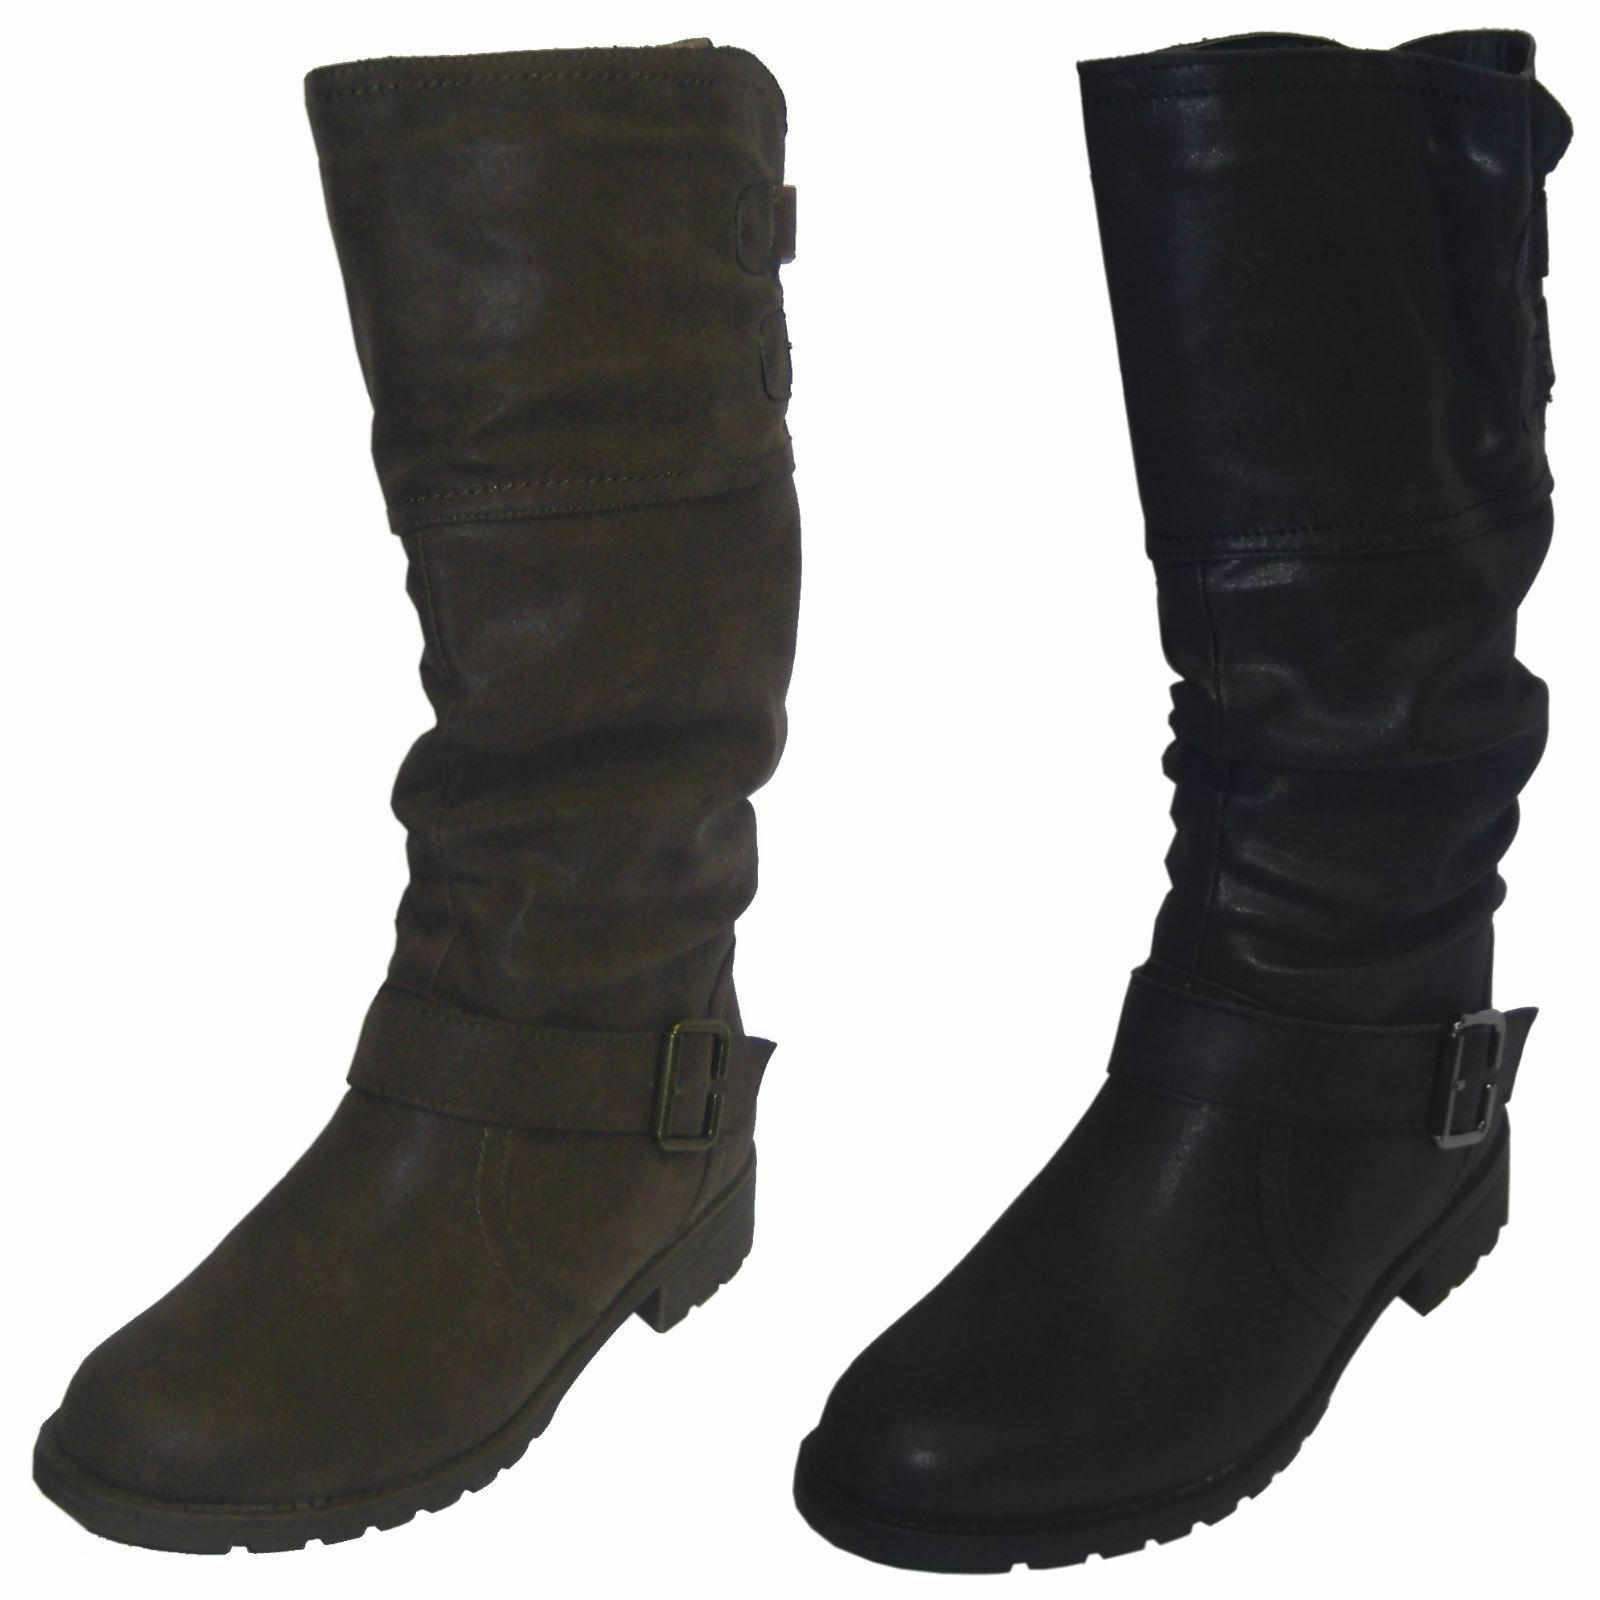 Ladies Spot On! F50321 Black Or Brown Synthetic Casual Warm Lined Mid Calf Boots